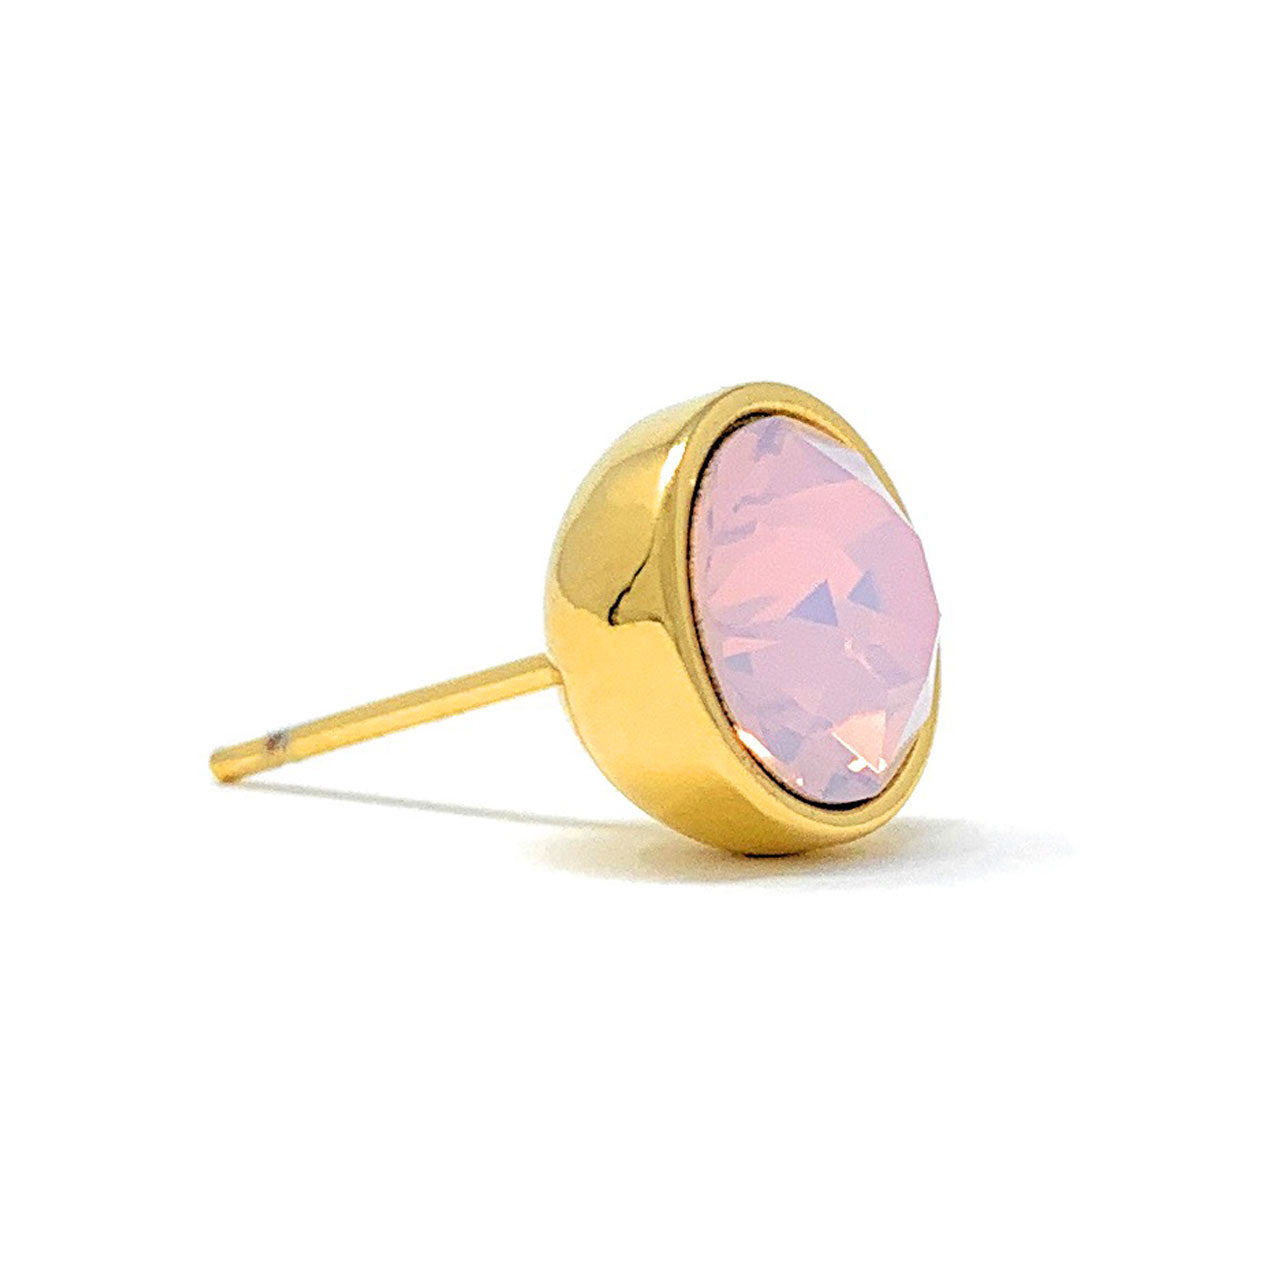 Harley Stud Earrings with Pink Rose Water Round Opals from Swarovski Gold Plated - Ed Heart